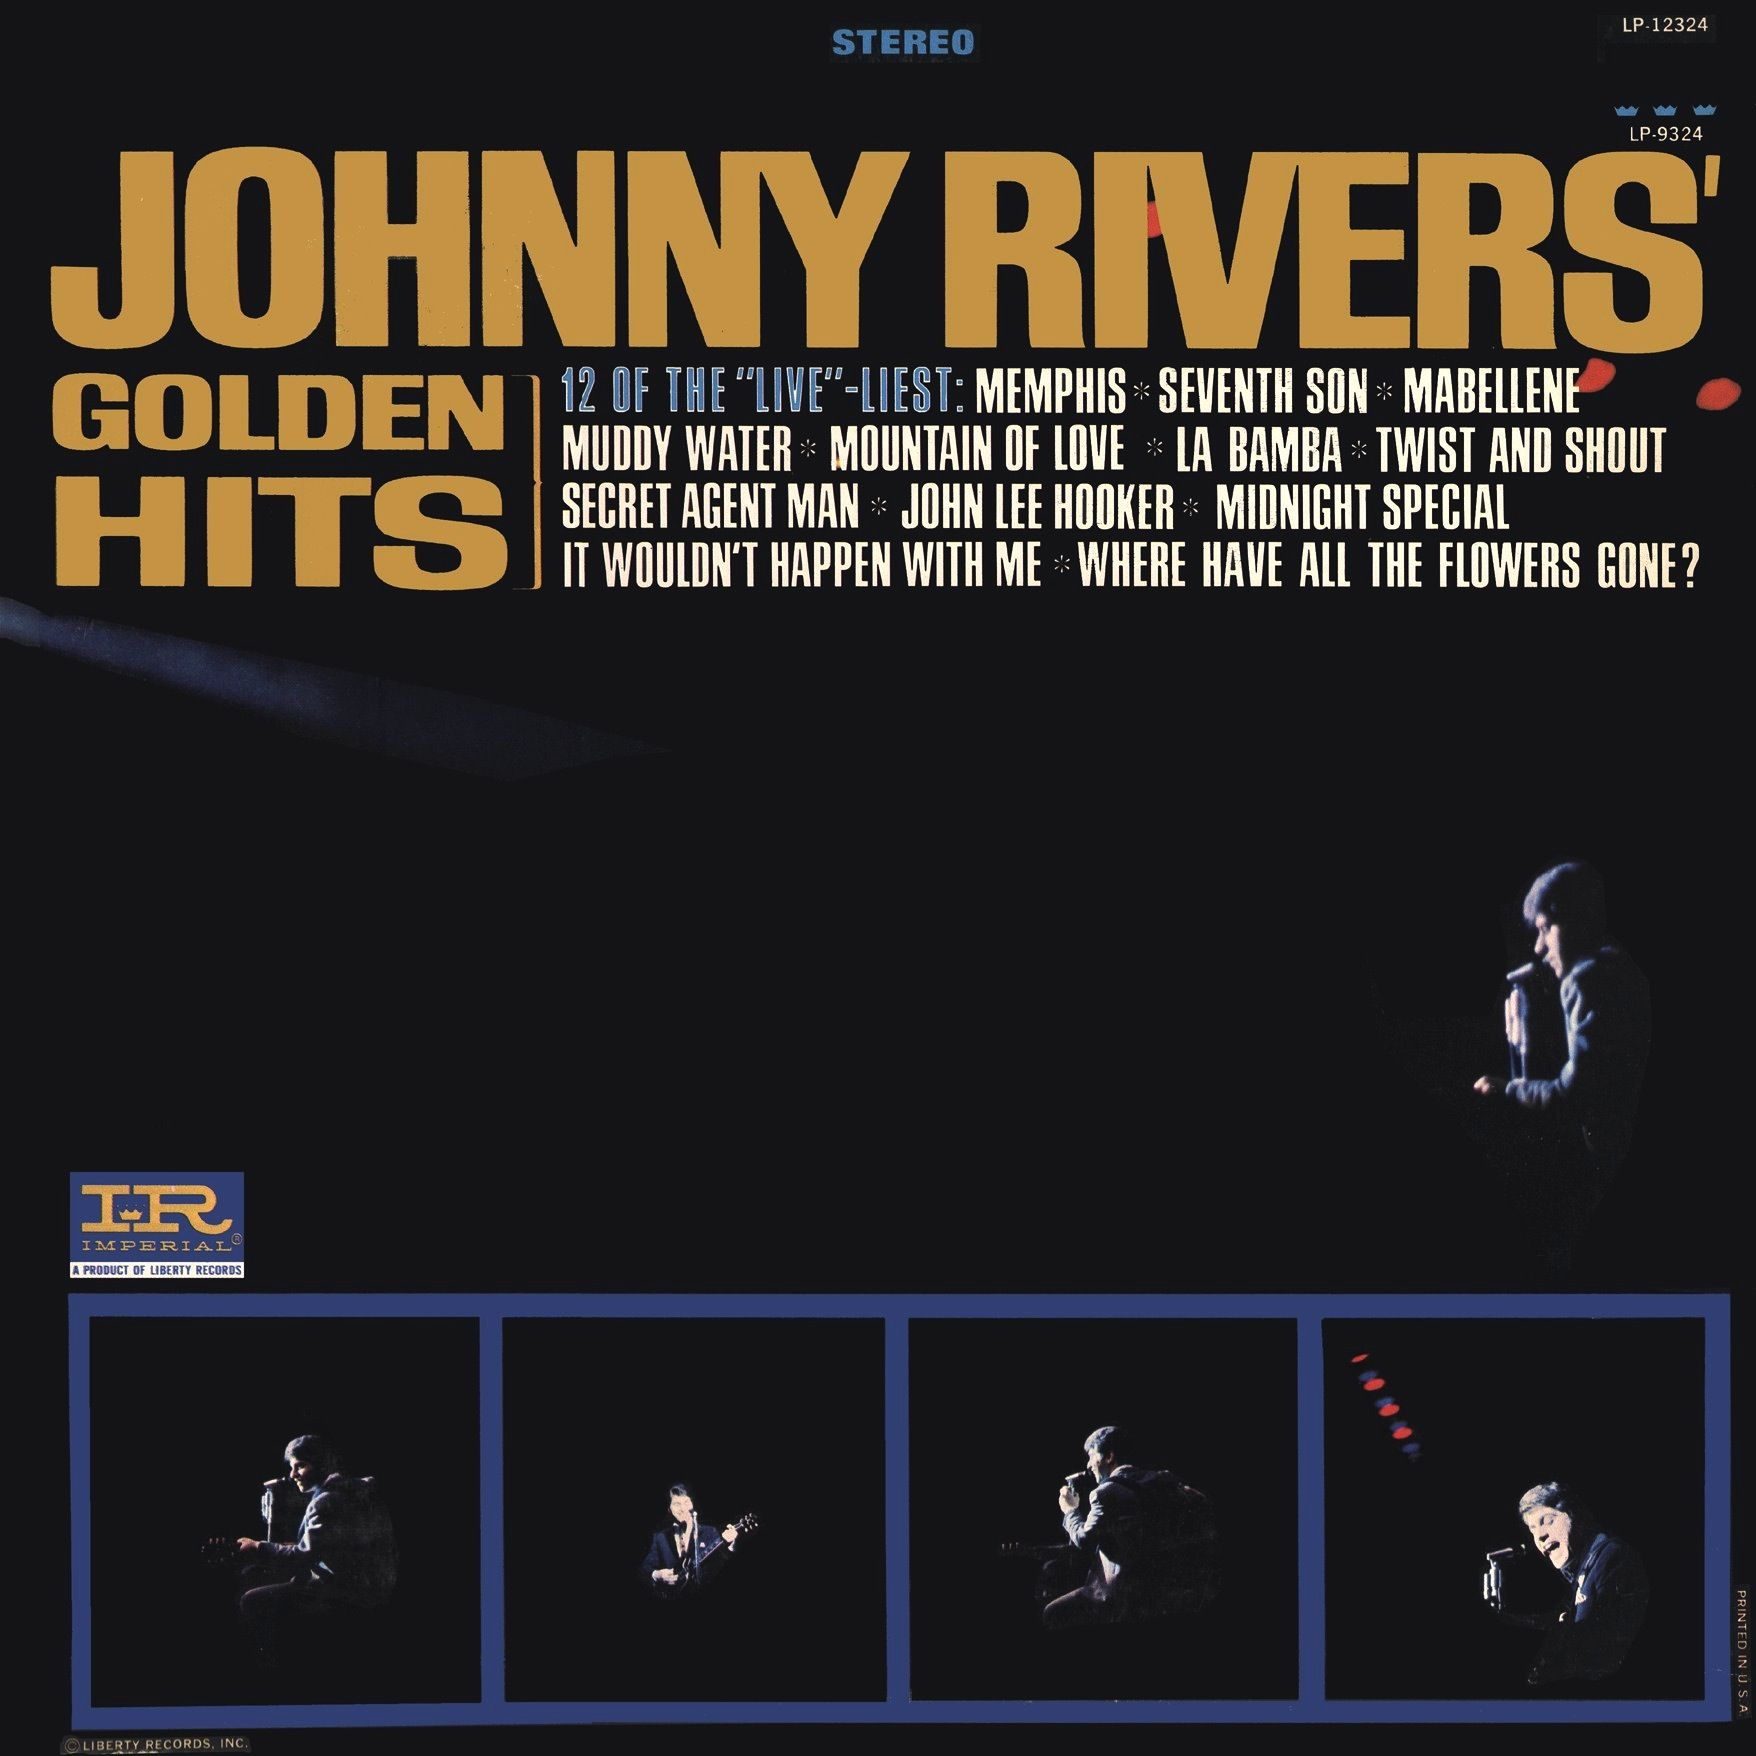 Golden Hits 1966 Imperial By Johnny Rivers Lp Cover Johnny Rivers Album Covers